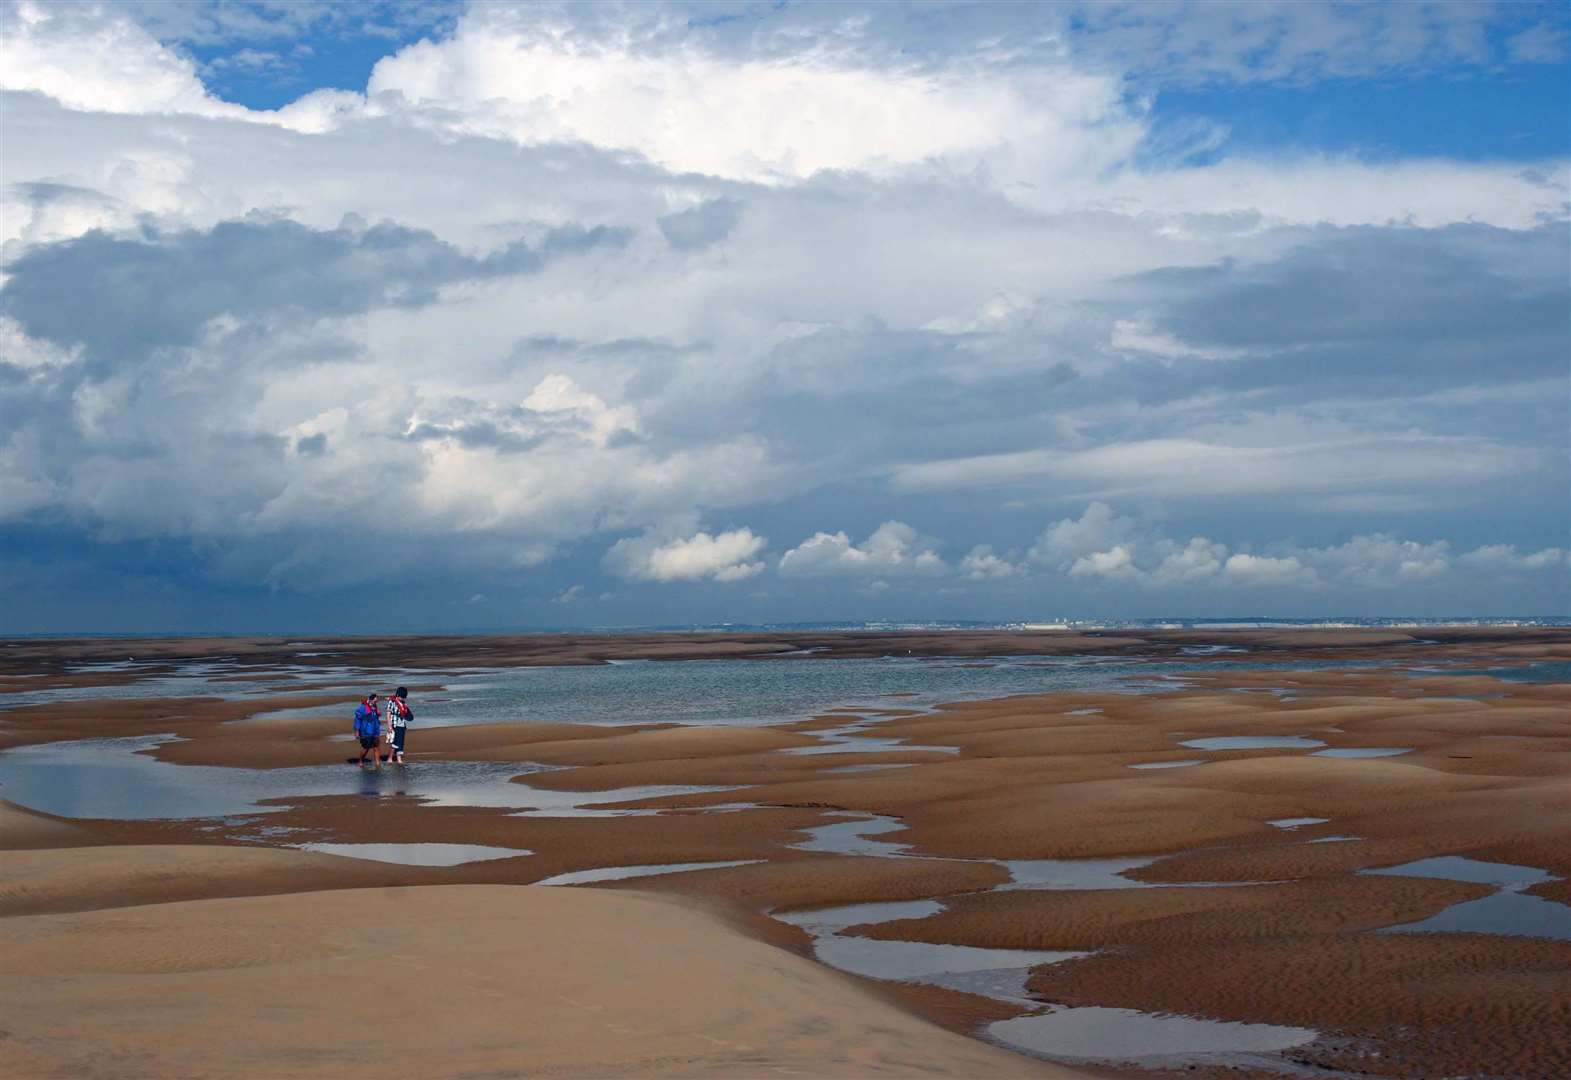 Goodwin Sands - new crowdfunding appeal